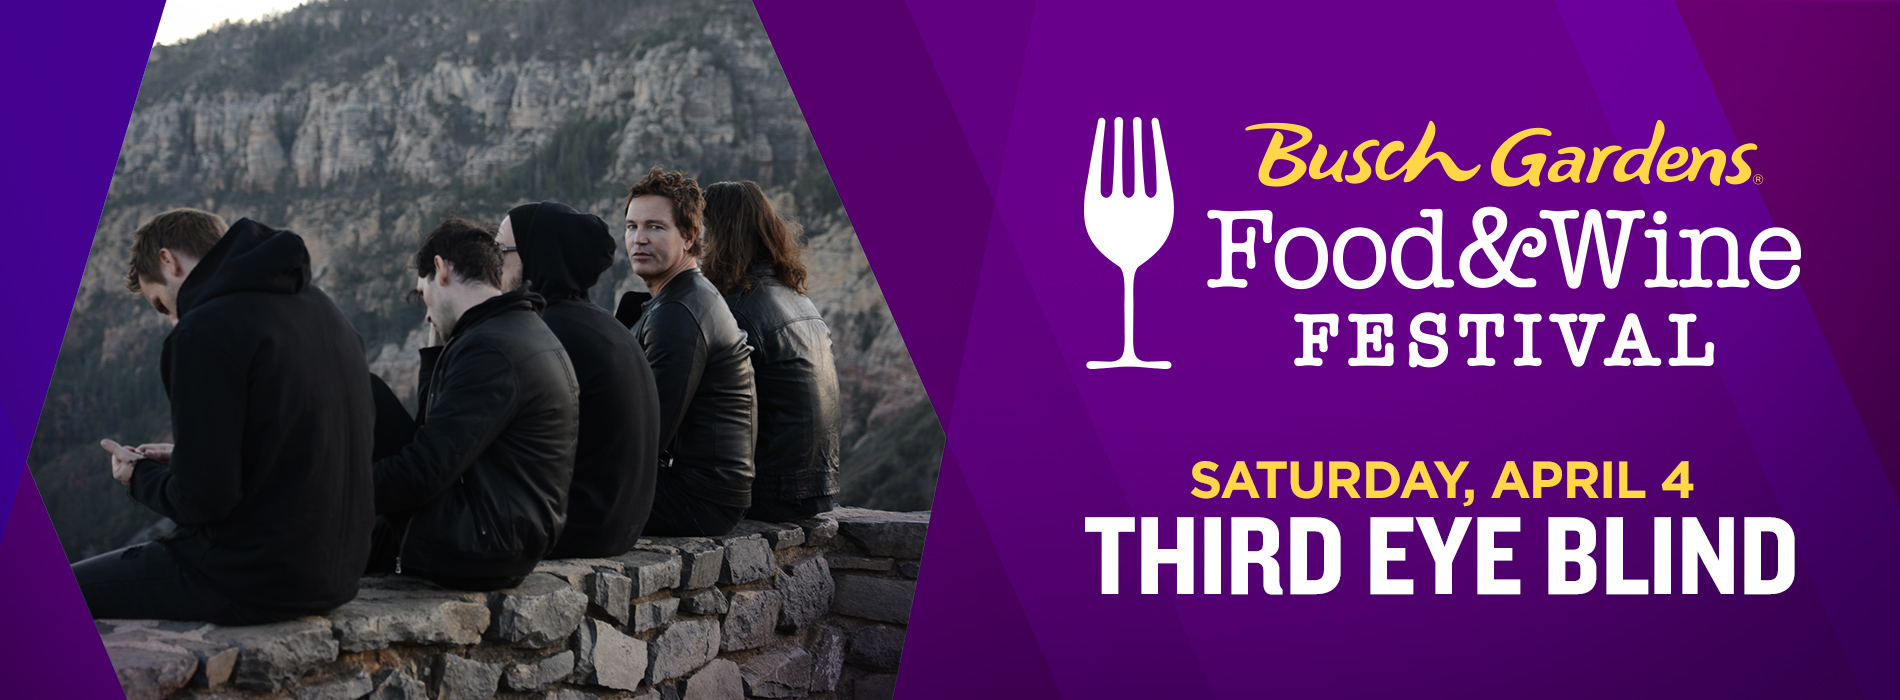 Third Eye Blind at Busch Gardens Tampa Bay's Food and Wine Festival on Saturday, April 4.